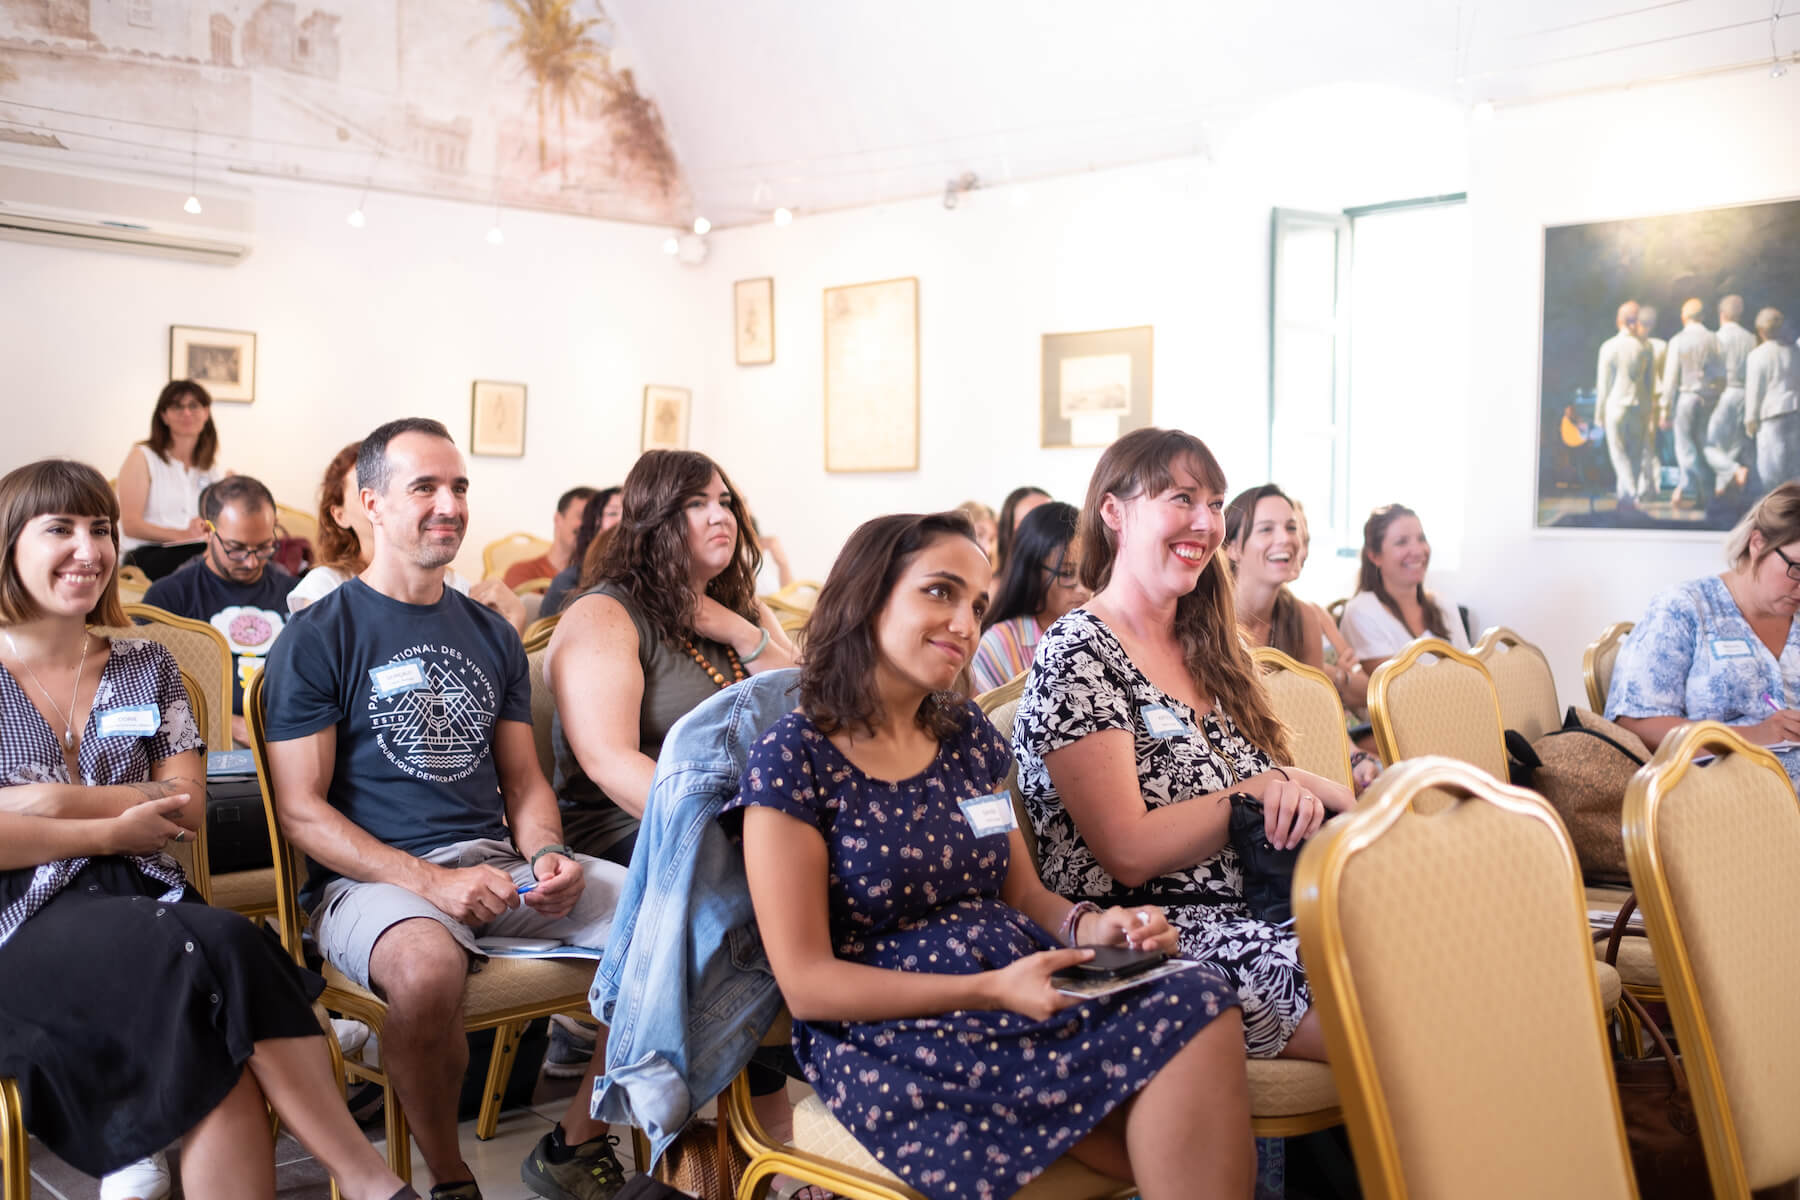 People listening to a speech in a conference room in Santorini, Greece